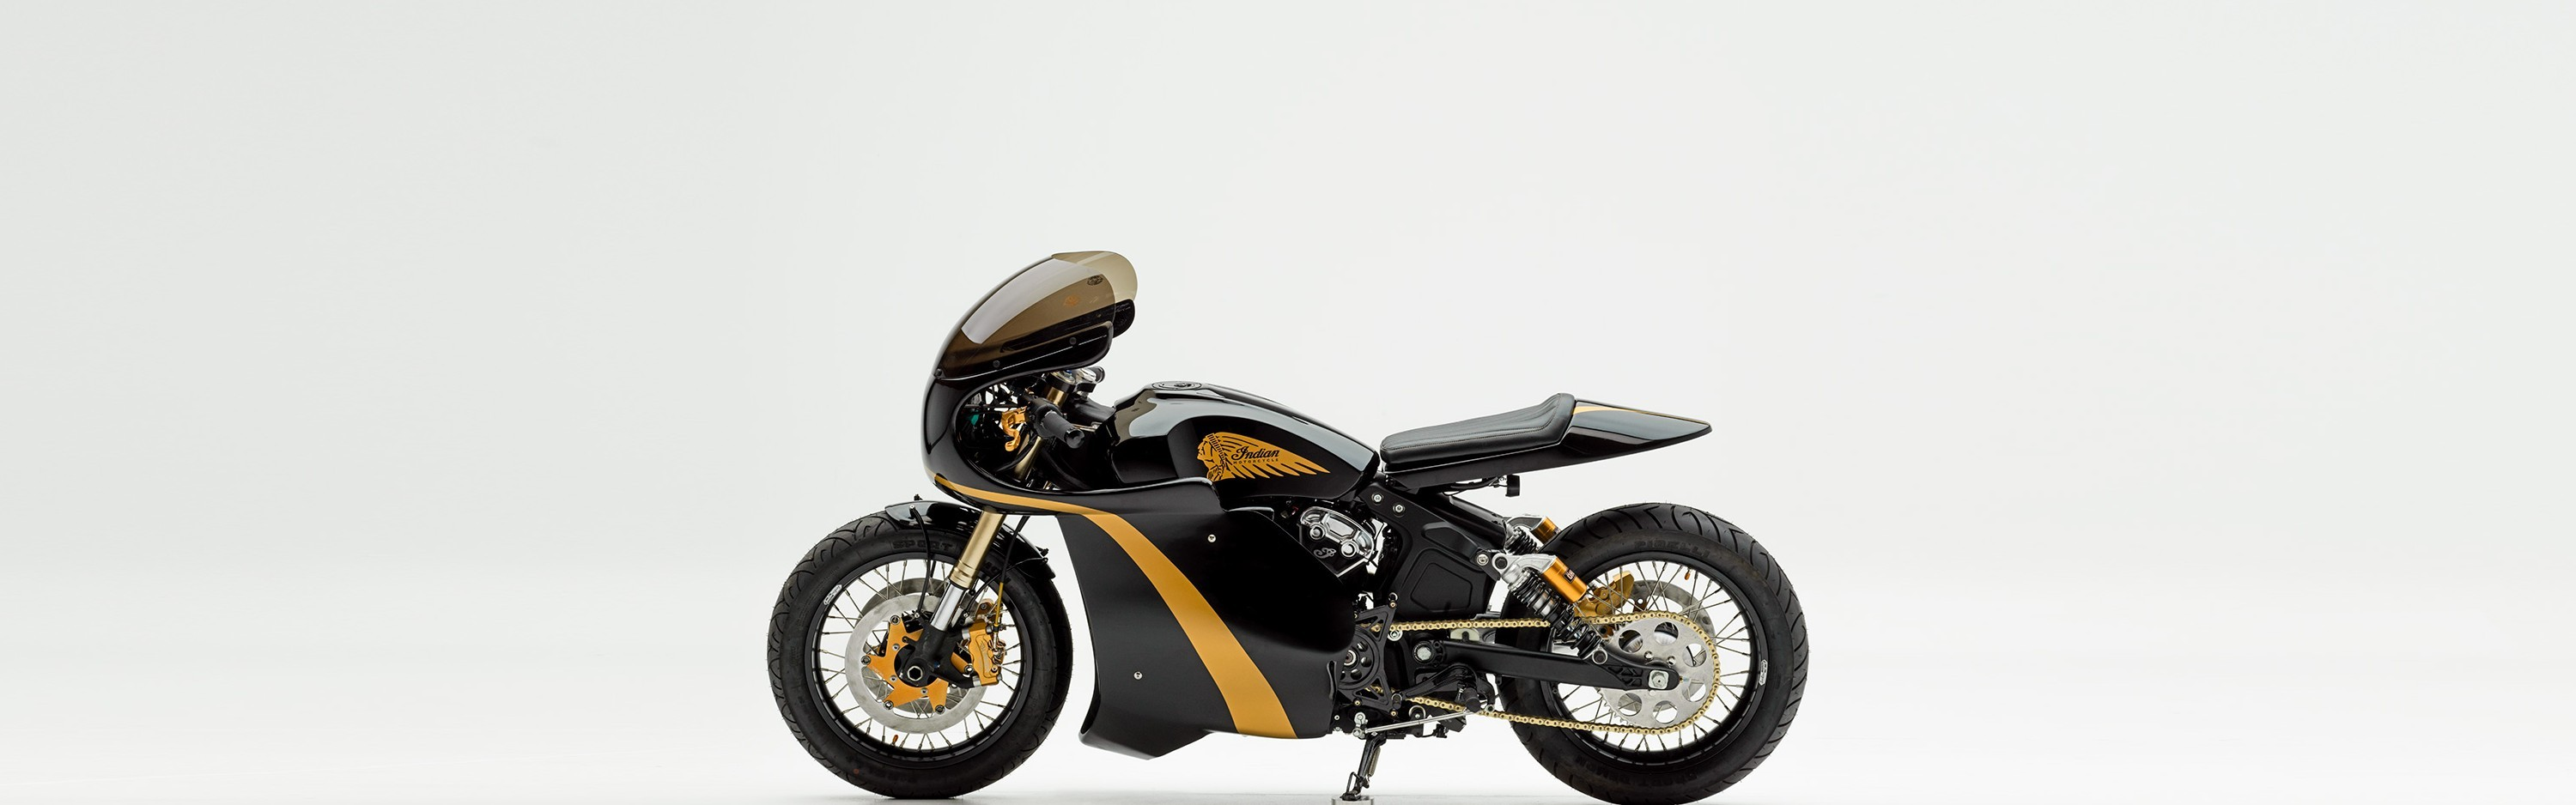 indian-motorcycle-the-wrench-scout-bobber-build-off-7